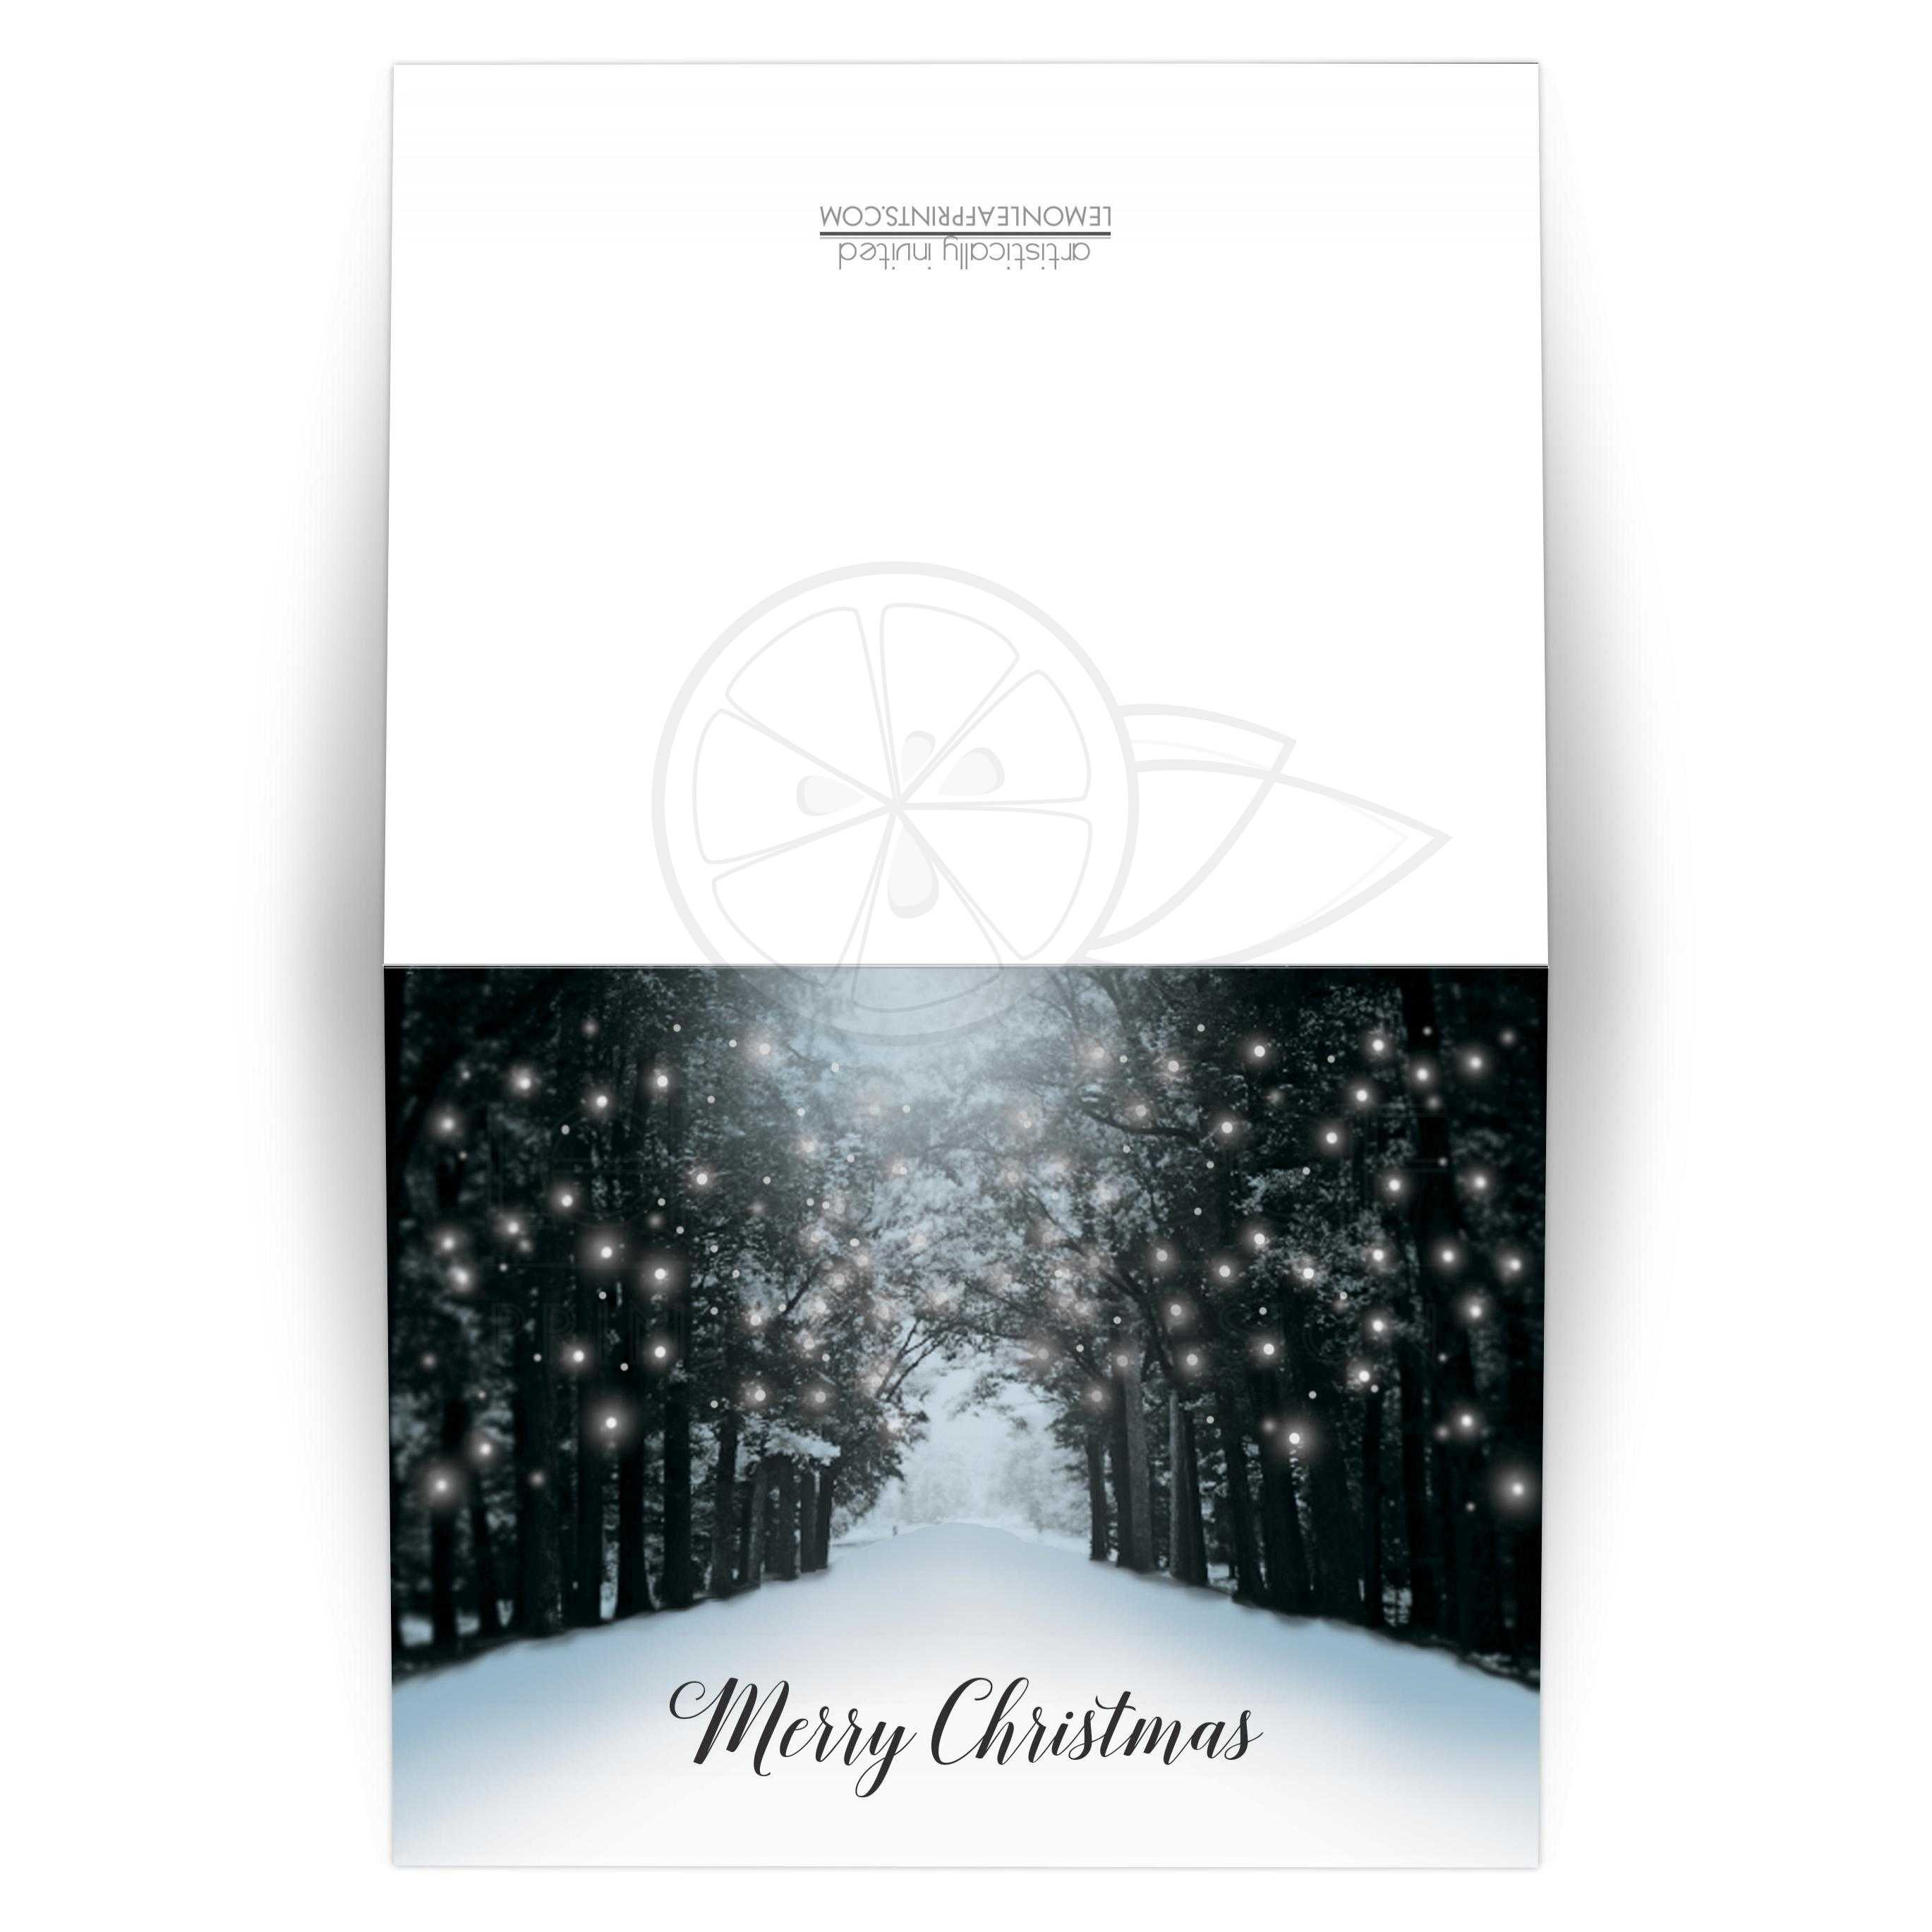 Personalized Major Holiday Greeting Cards Invitations And Stationery